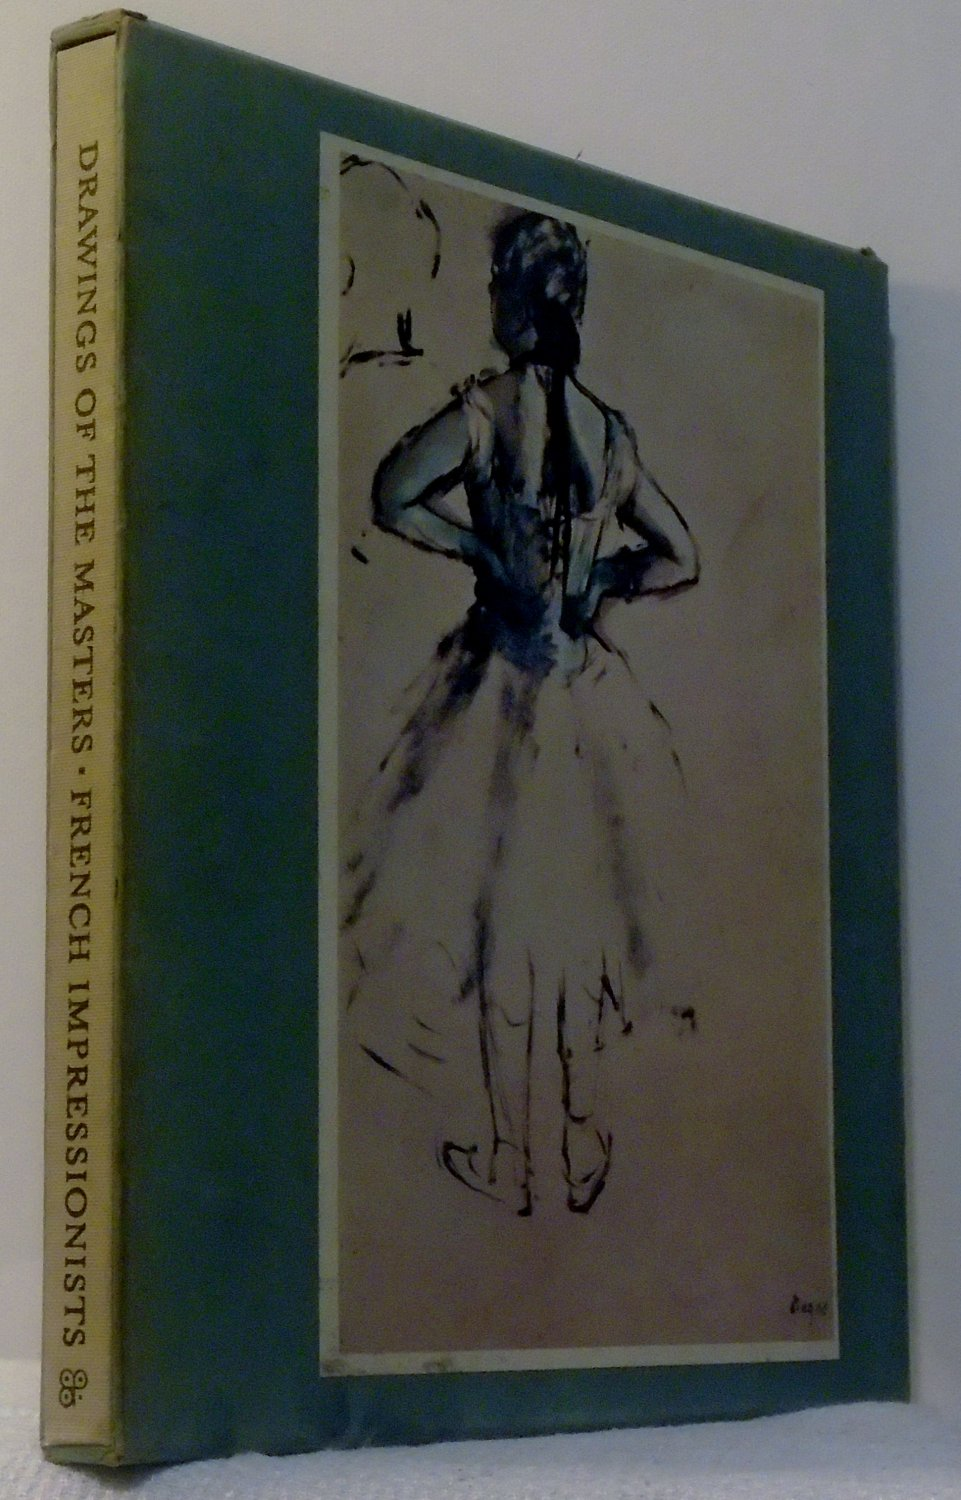 Drawings of the Masters: French Impressionists,